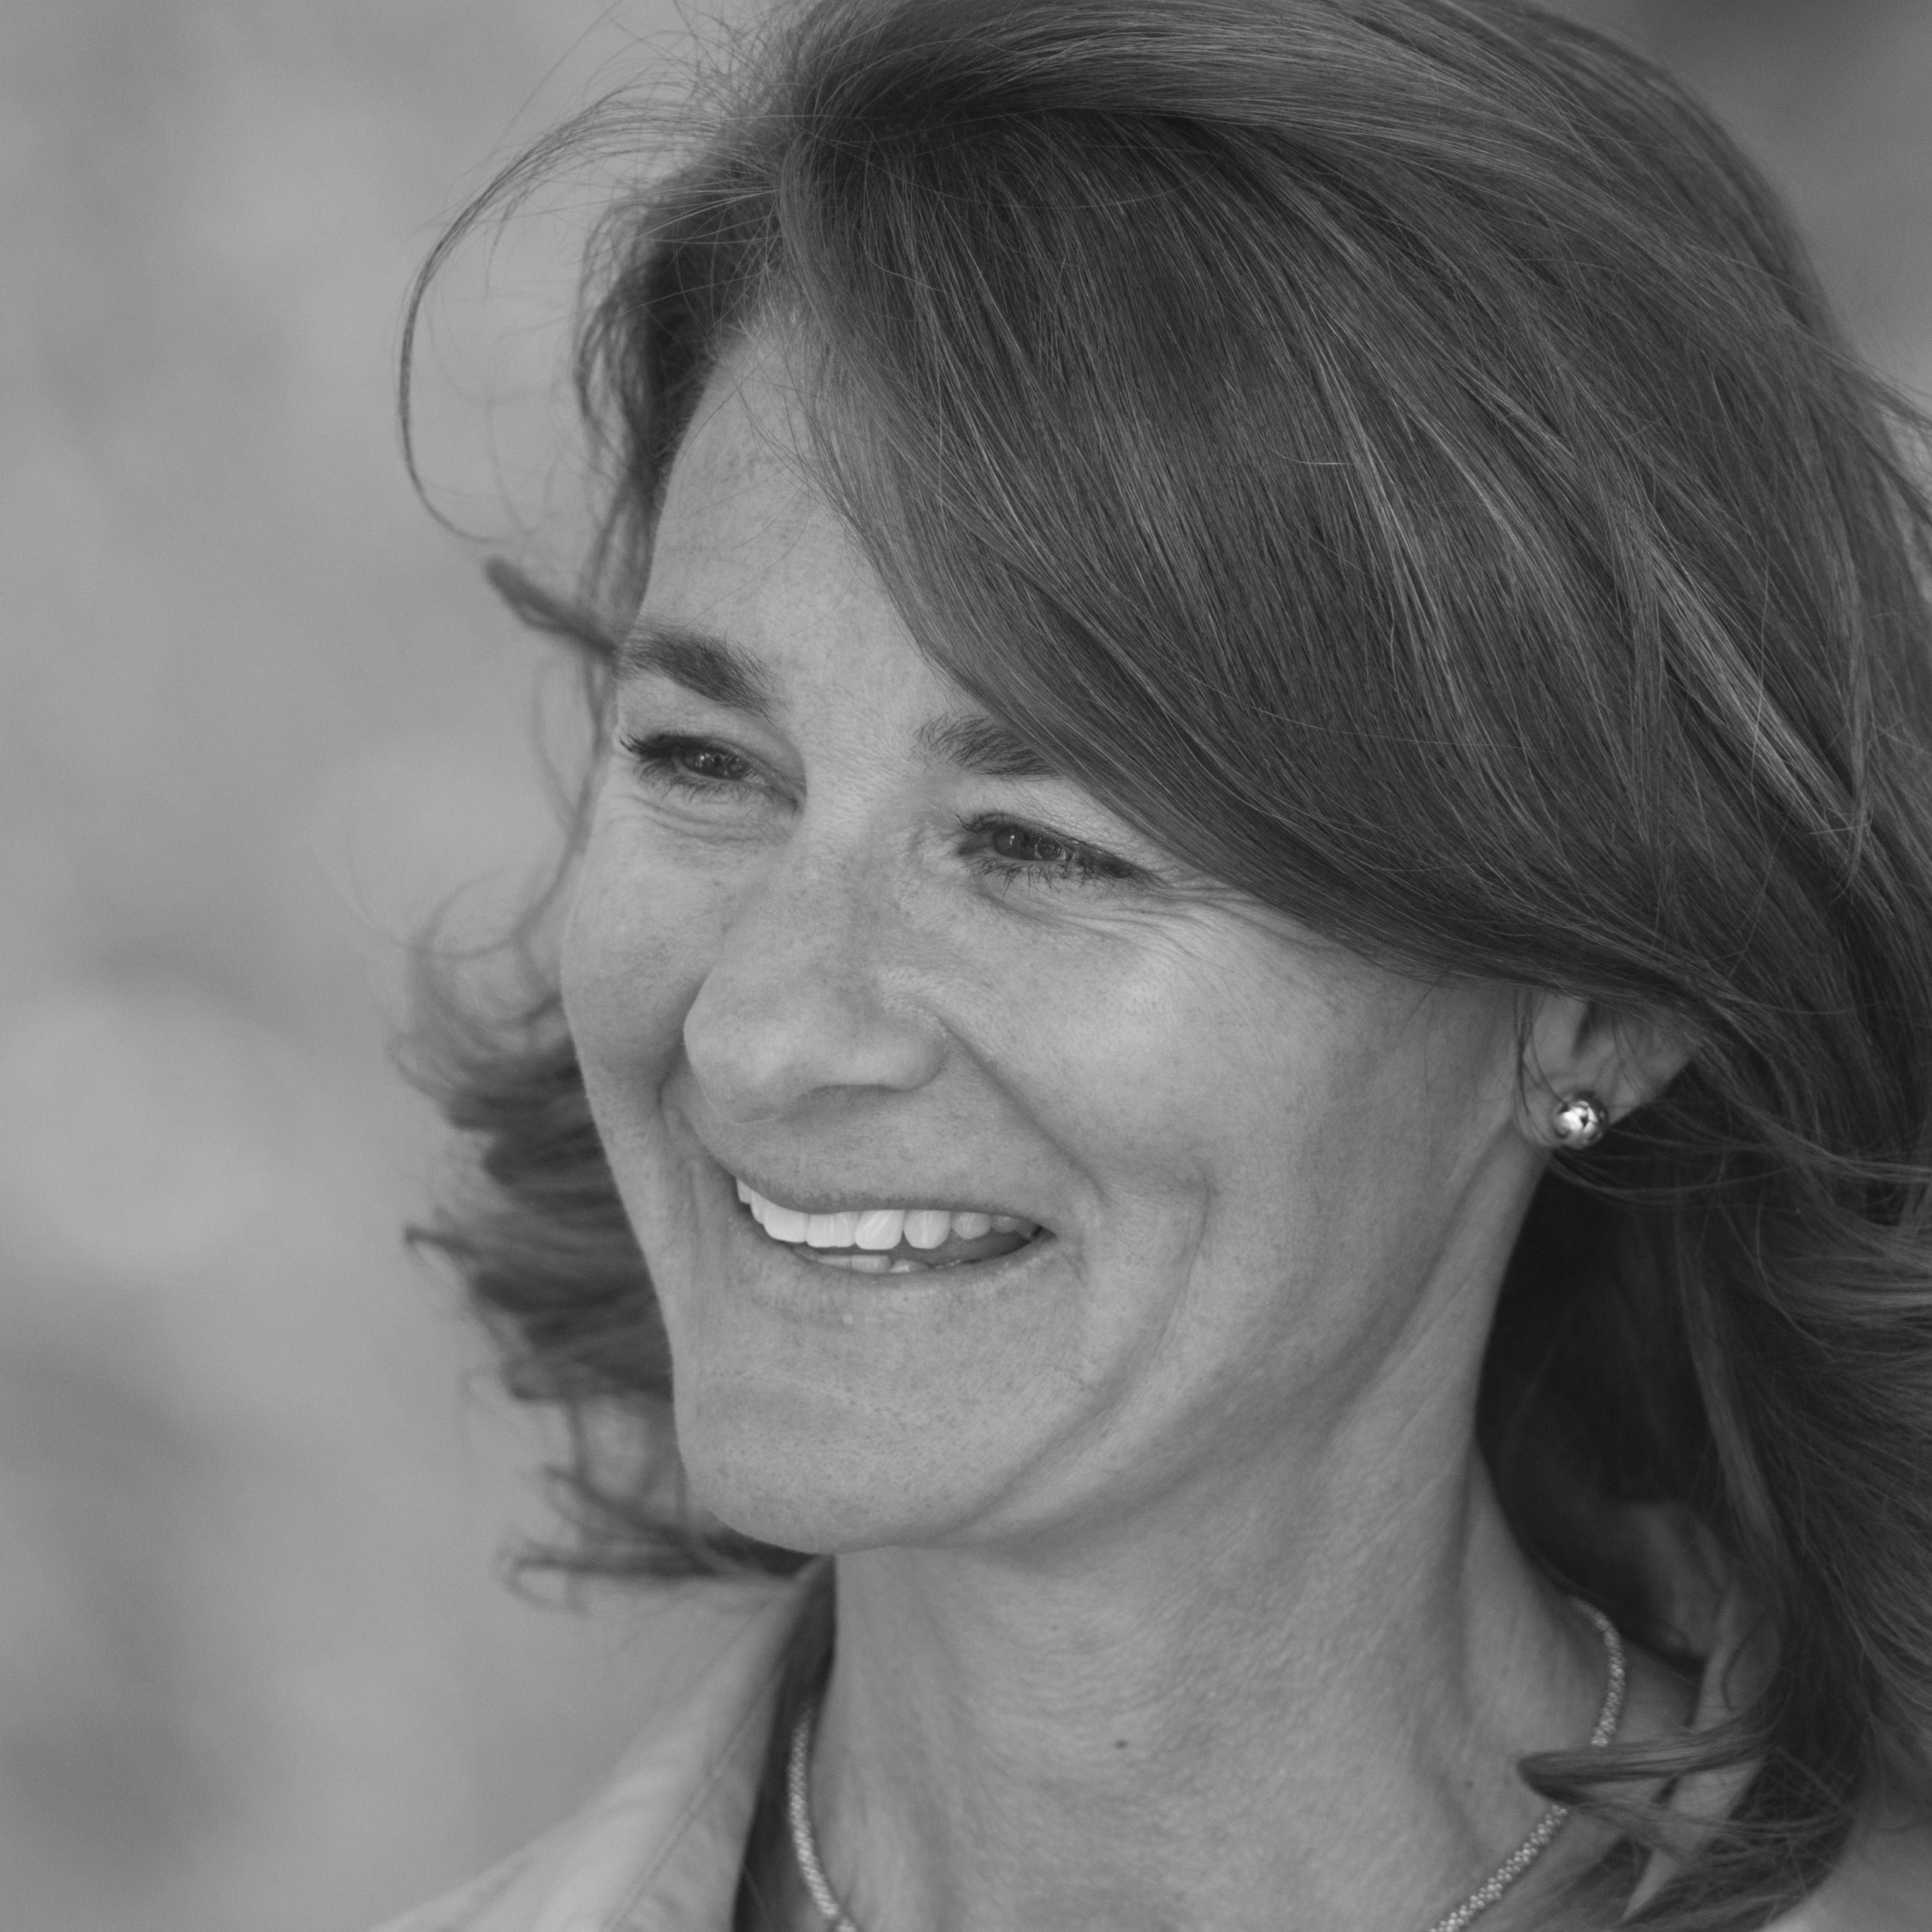 Melinda Gates Headshot